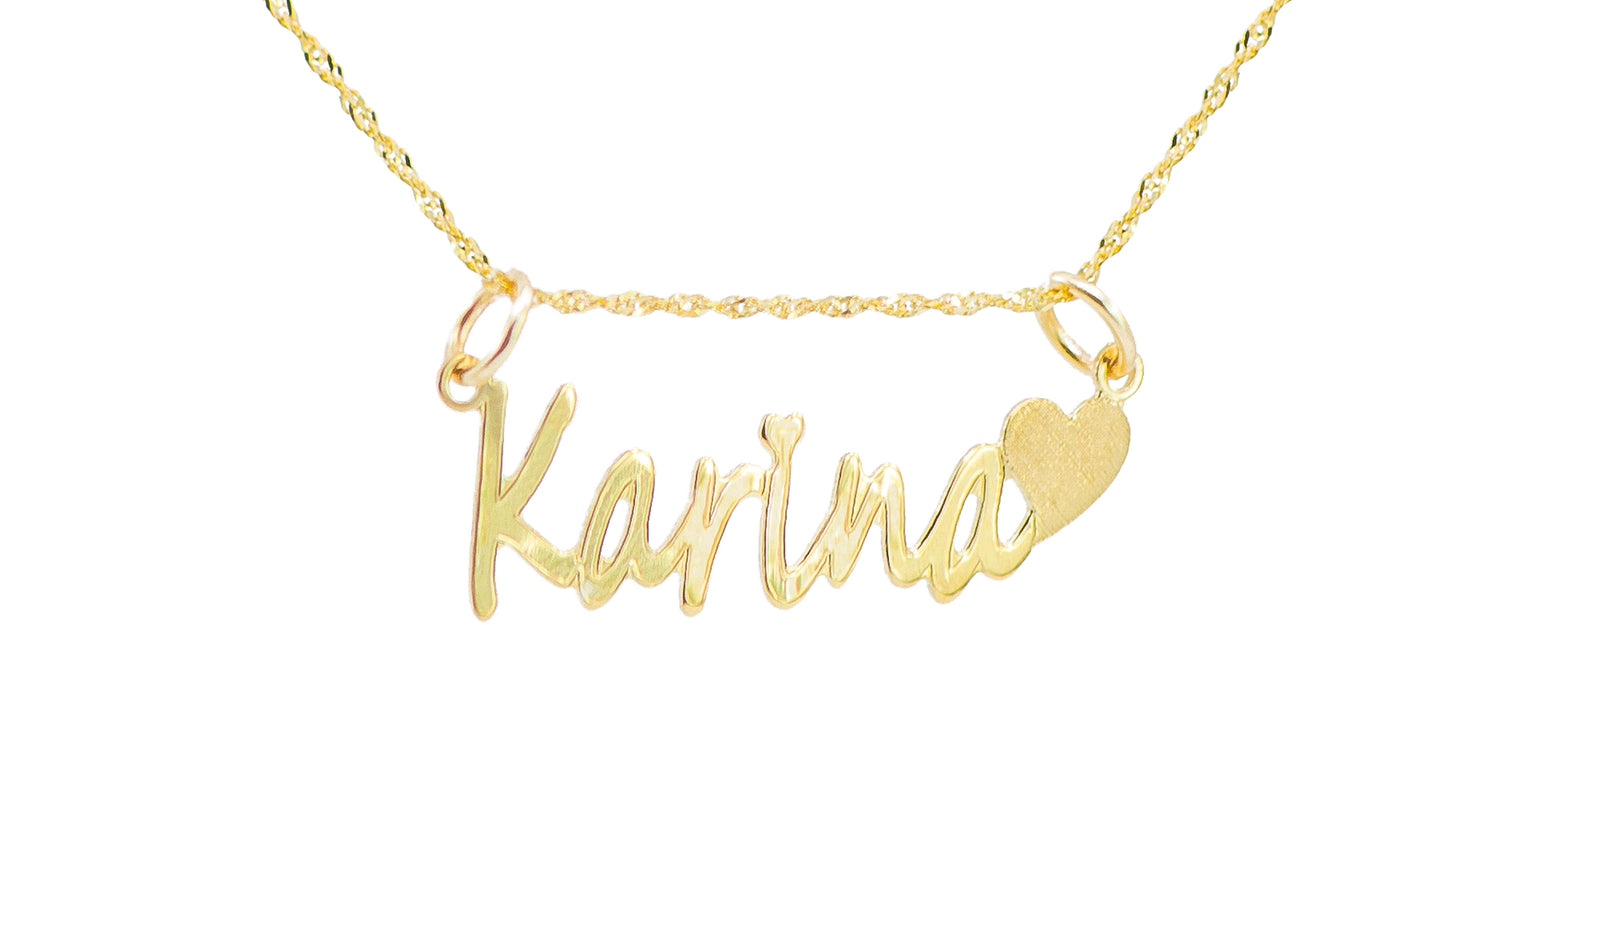 PERSONALIZED CORAZON NECKLACE